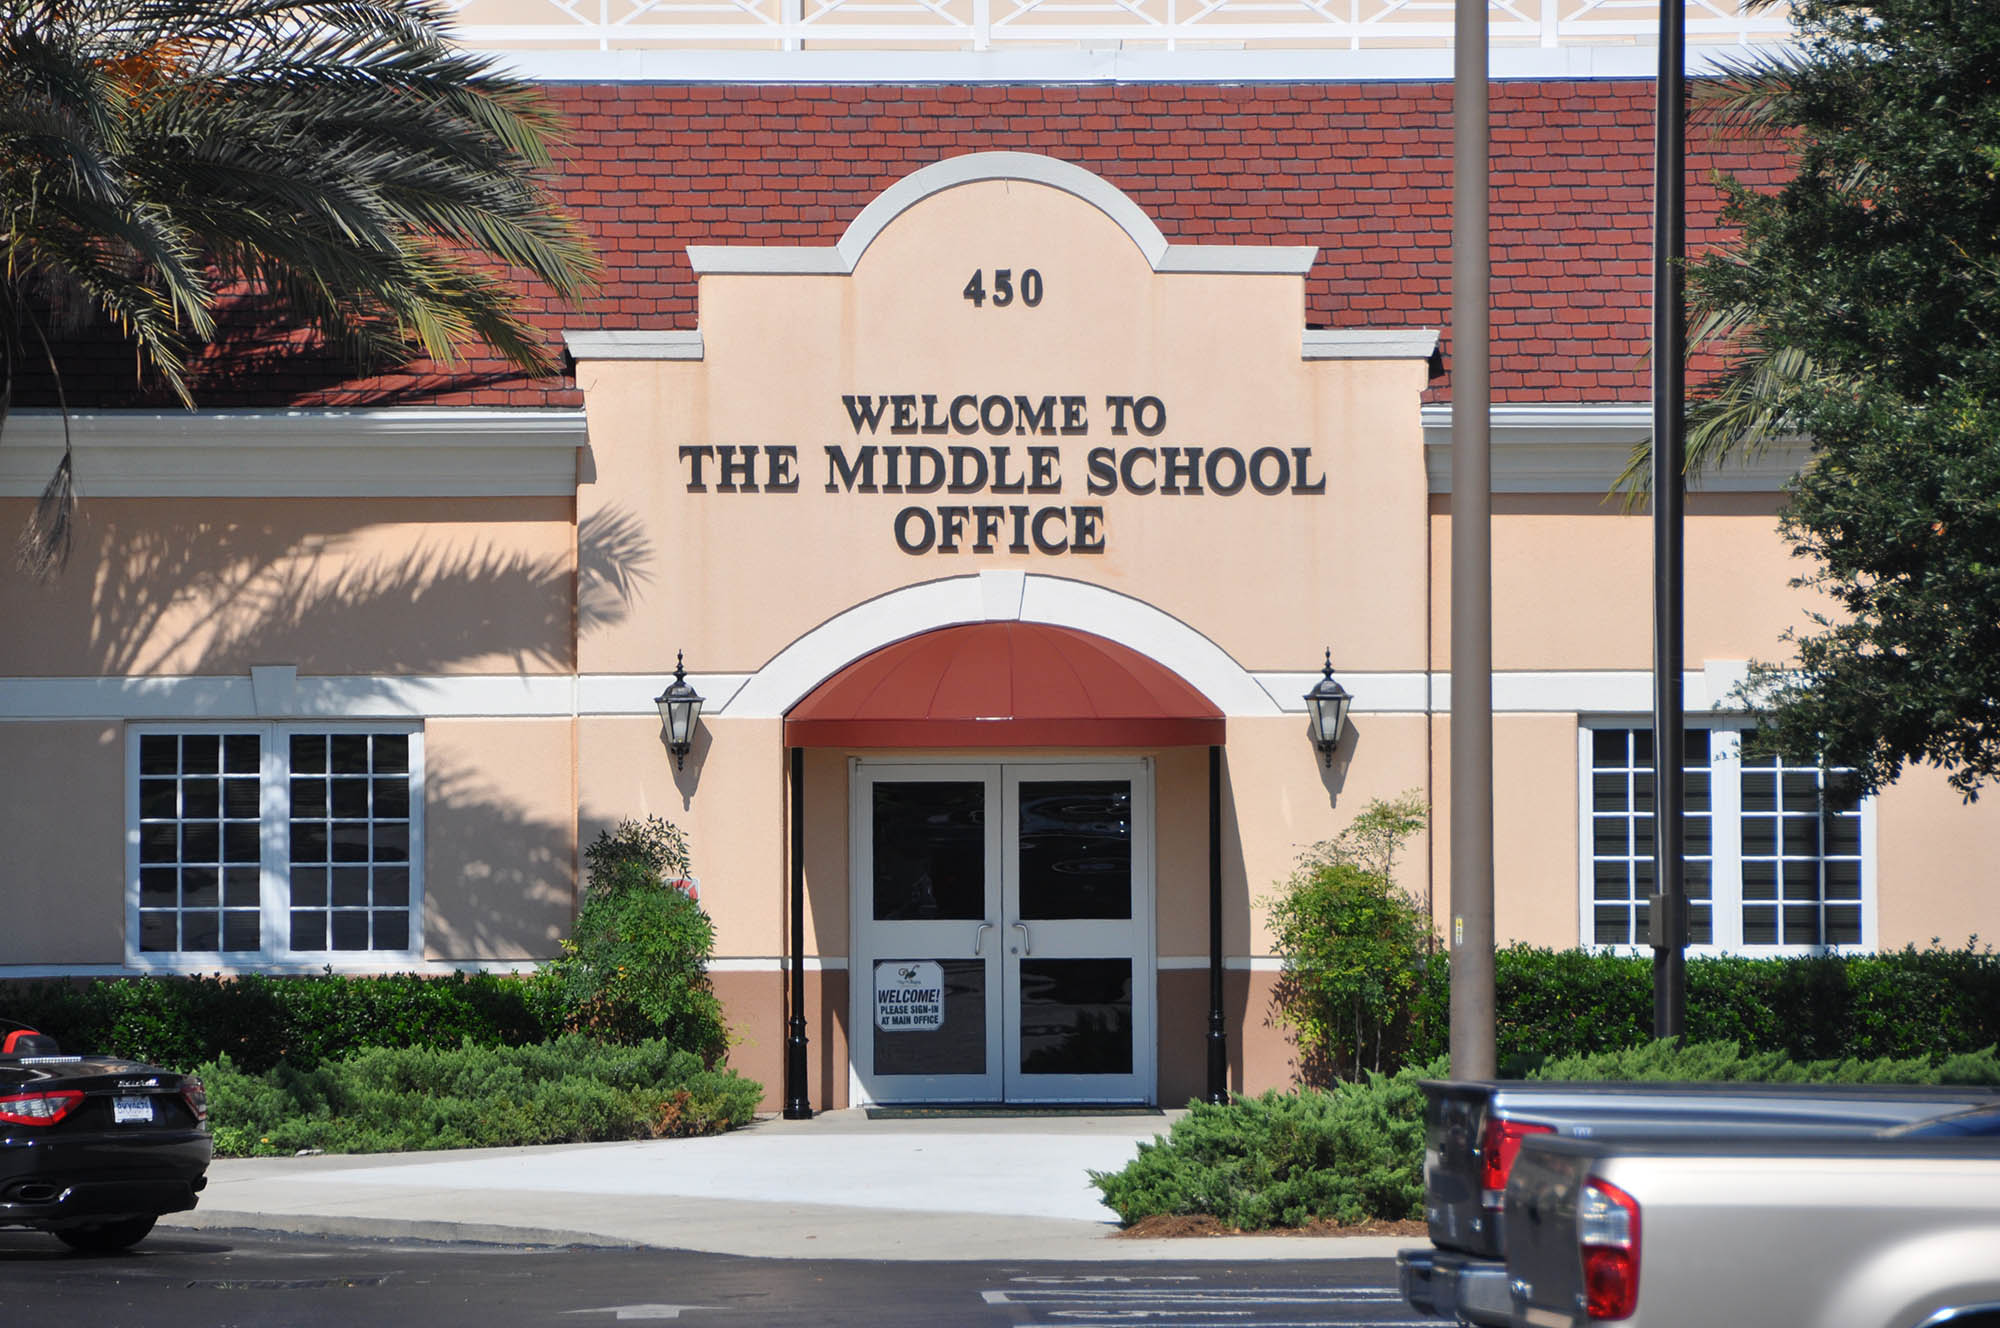 Middle School image 34 of 37